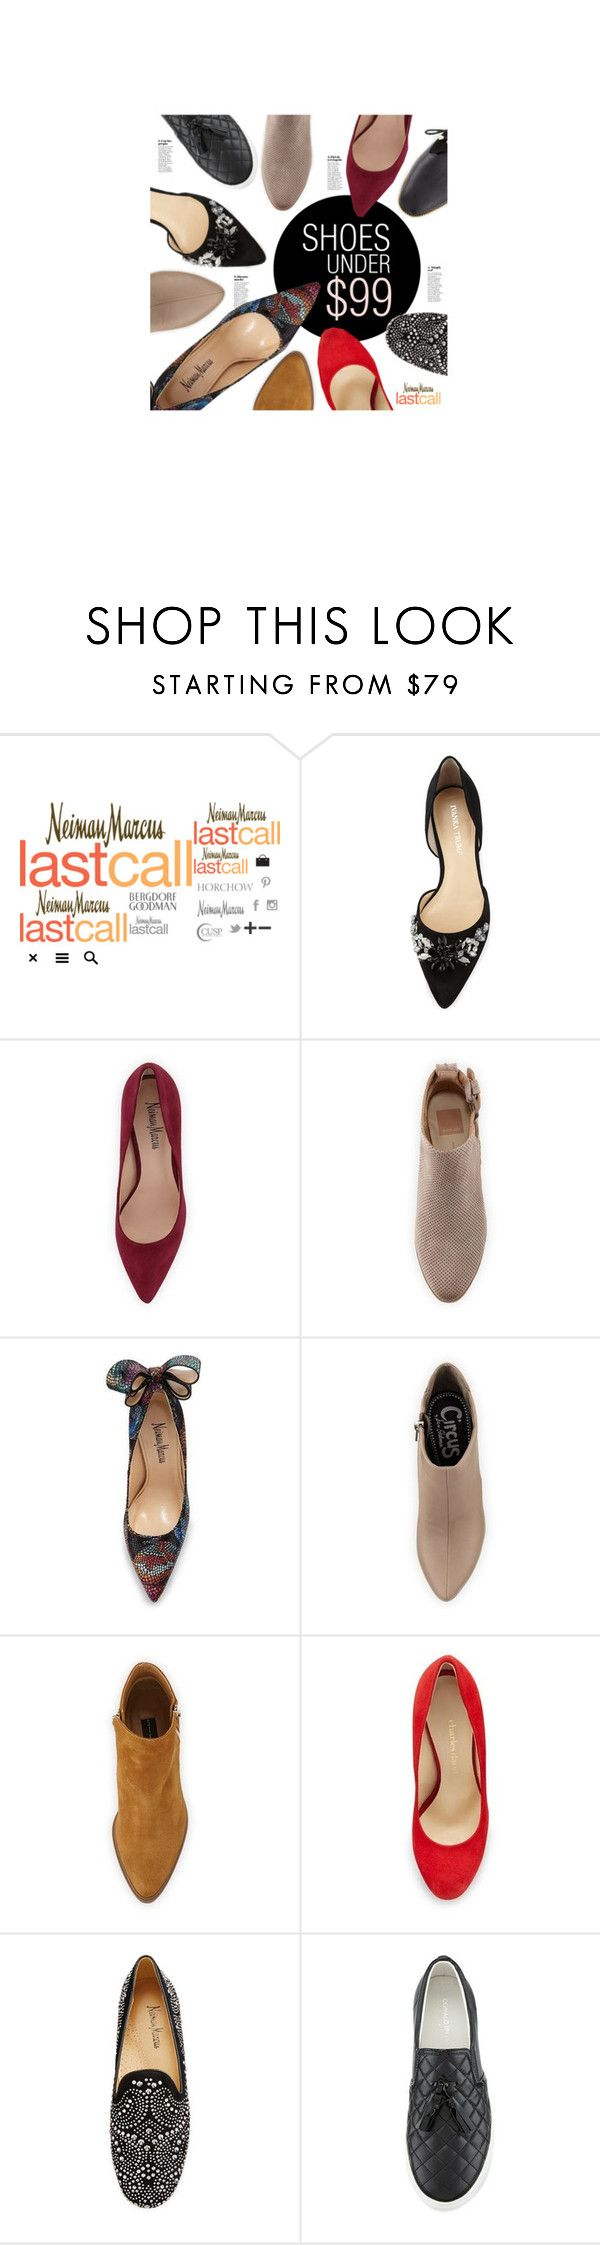 """Shoes Under $99"" by lastcall ❤ liked on Polyvore featuring Lydell NYC, Ivanka Trump, Neiman Marcus, Dolce Vita, Circus by Sam Edelman, Charles David, Donald J Pliner and Adrianna Papell"